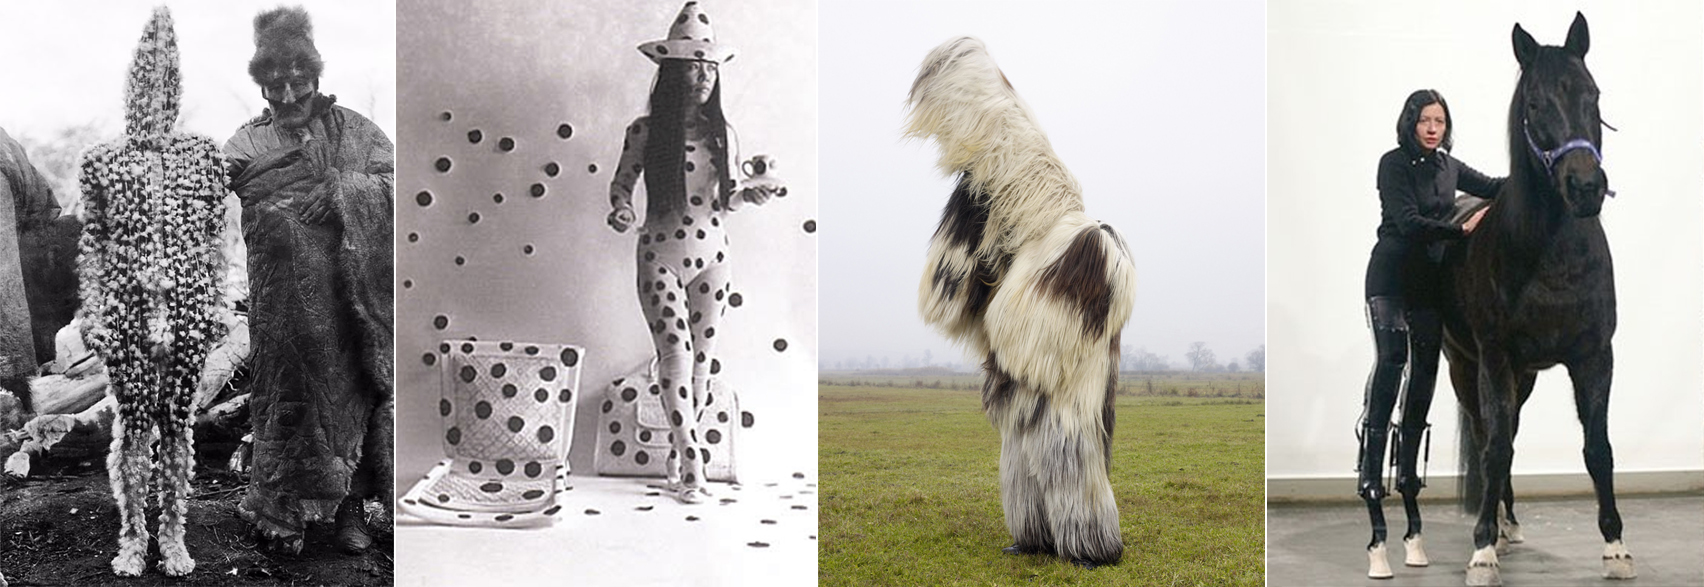 From left to write: Selk'nam in ritual dress (photograph by Martín Gusinde) | Yayoi Kusuma |  Wilder Mann  series by Charles Fréger |  May the Horse Live in Me  by Marion Laval-Jeantet and Benoit Mangin